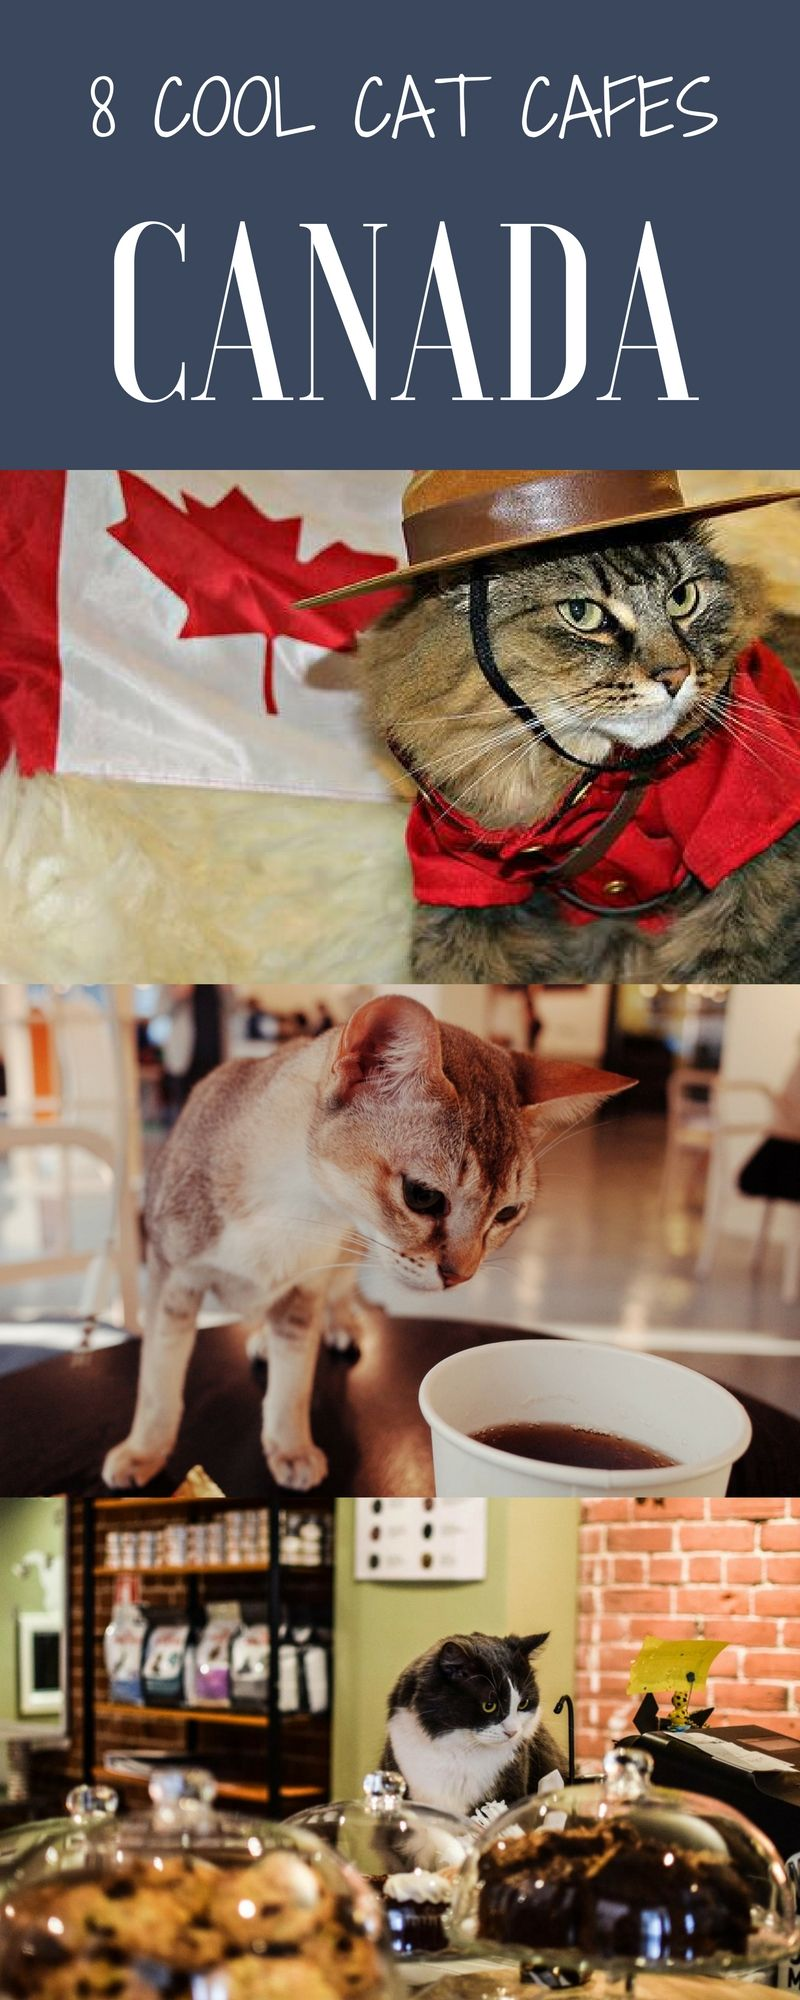 Cool Cat Cafes in Canada Cat cafe, Canada travel, Cool cats